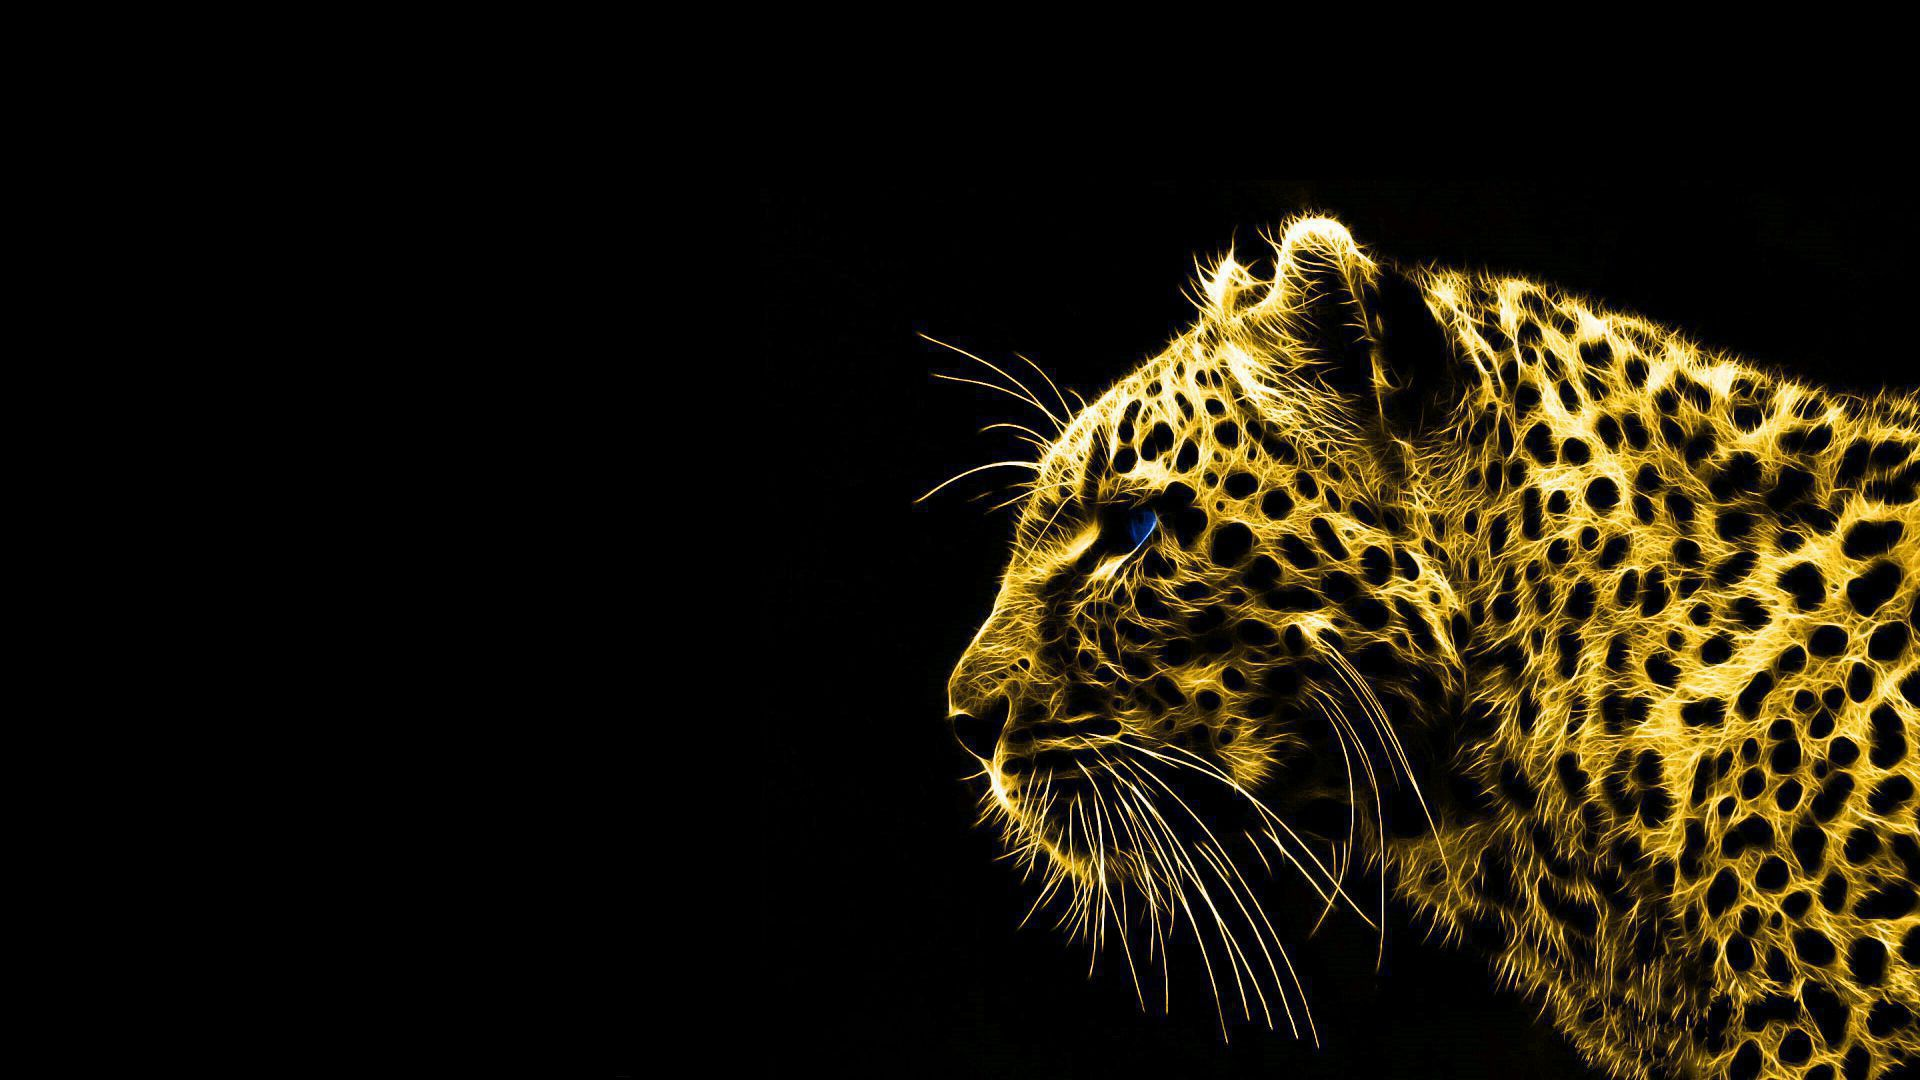 Black And Gold Wallpaper High Quality Wallpapers